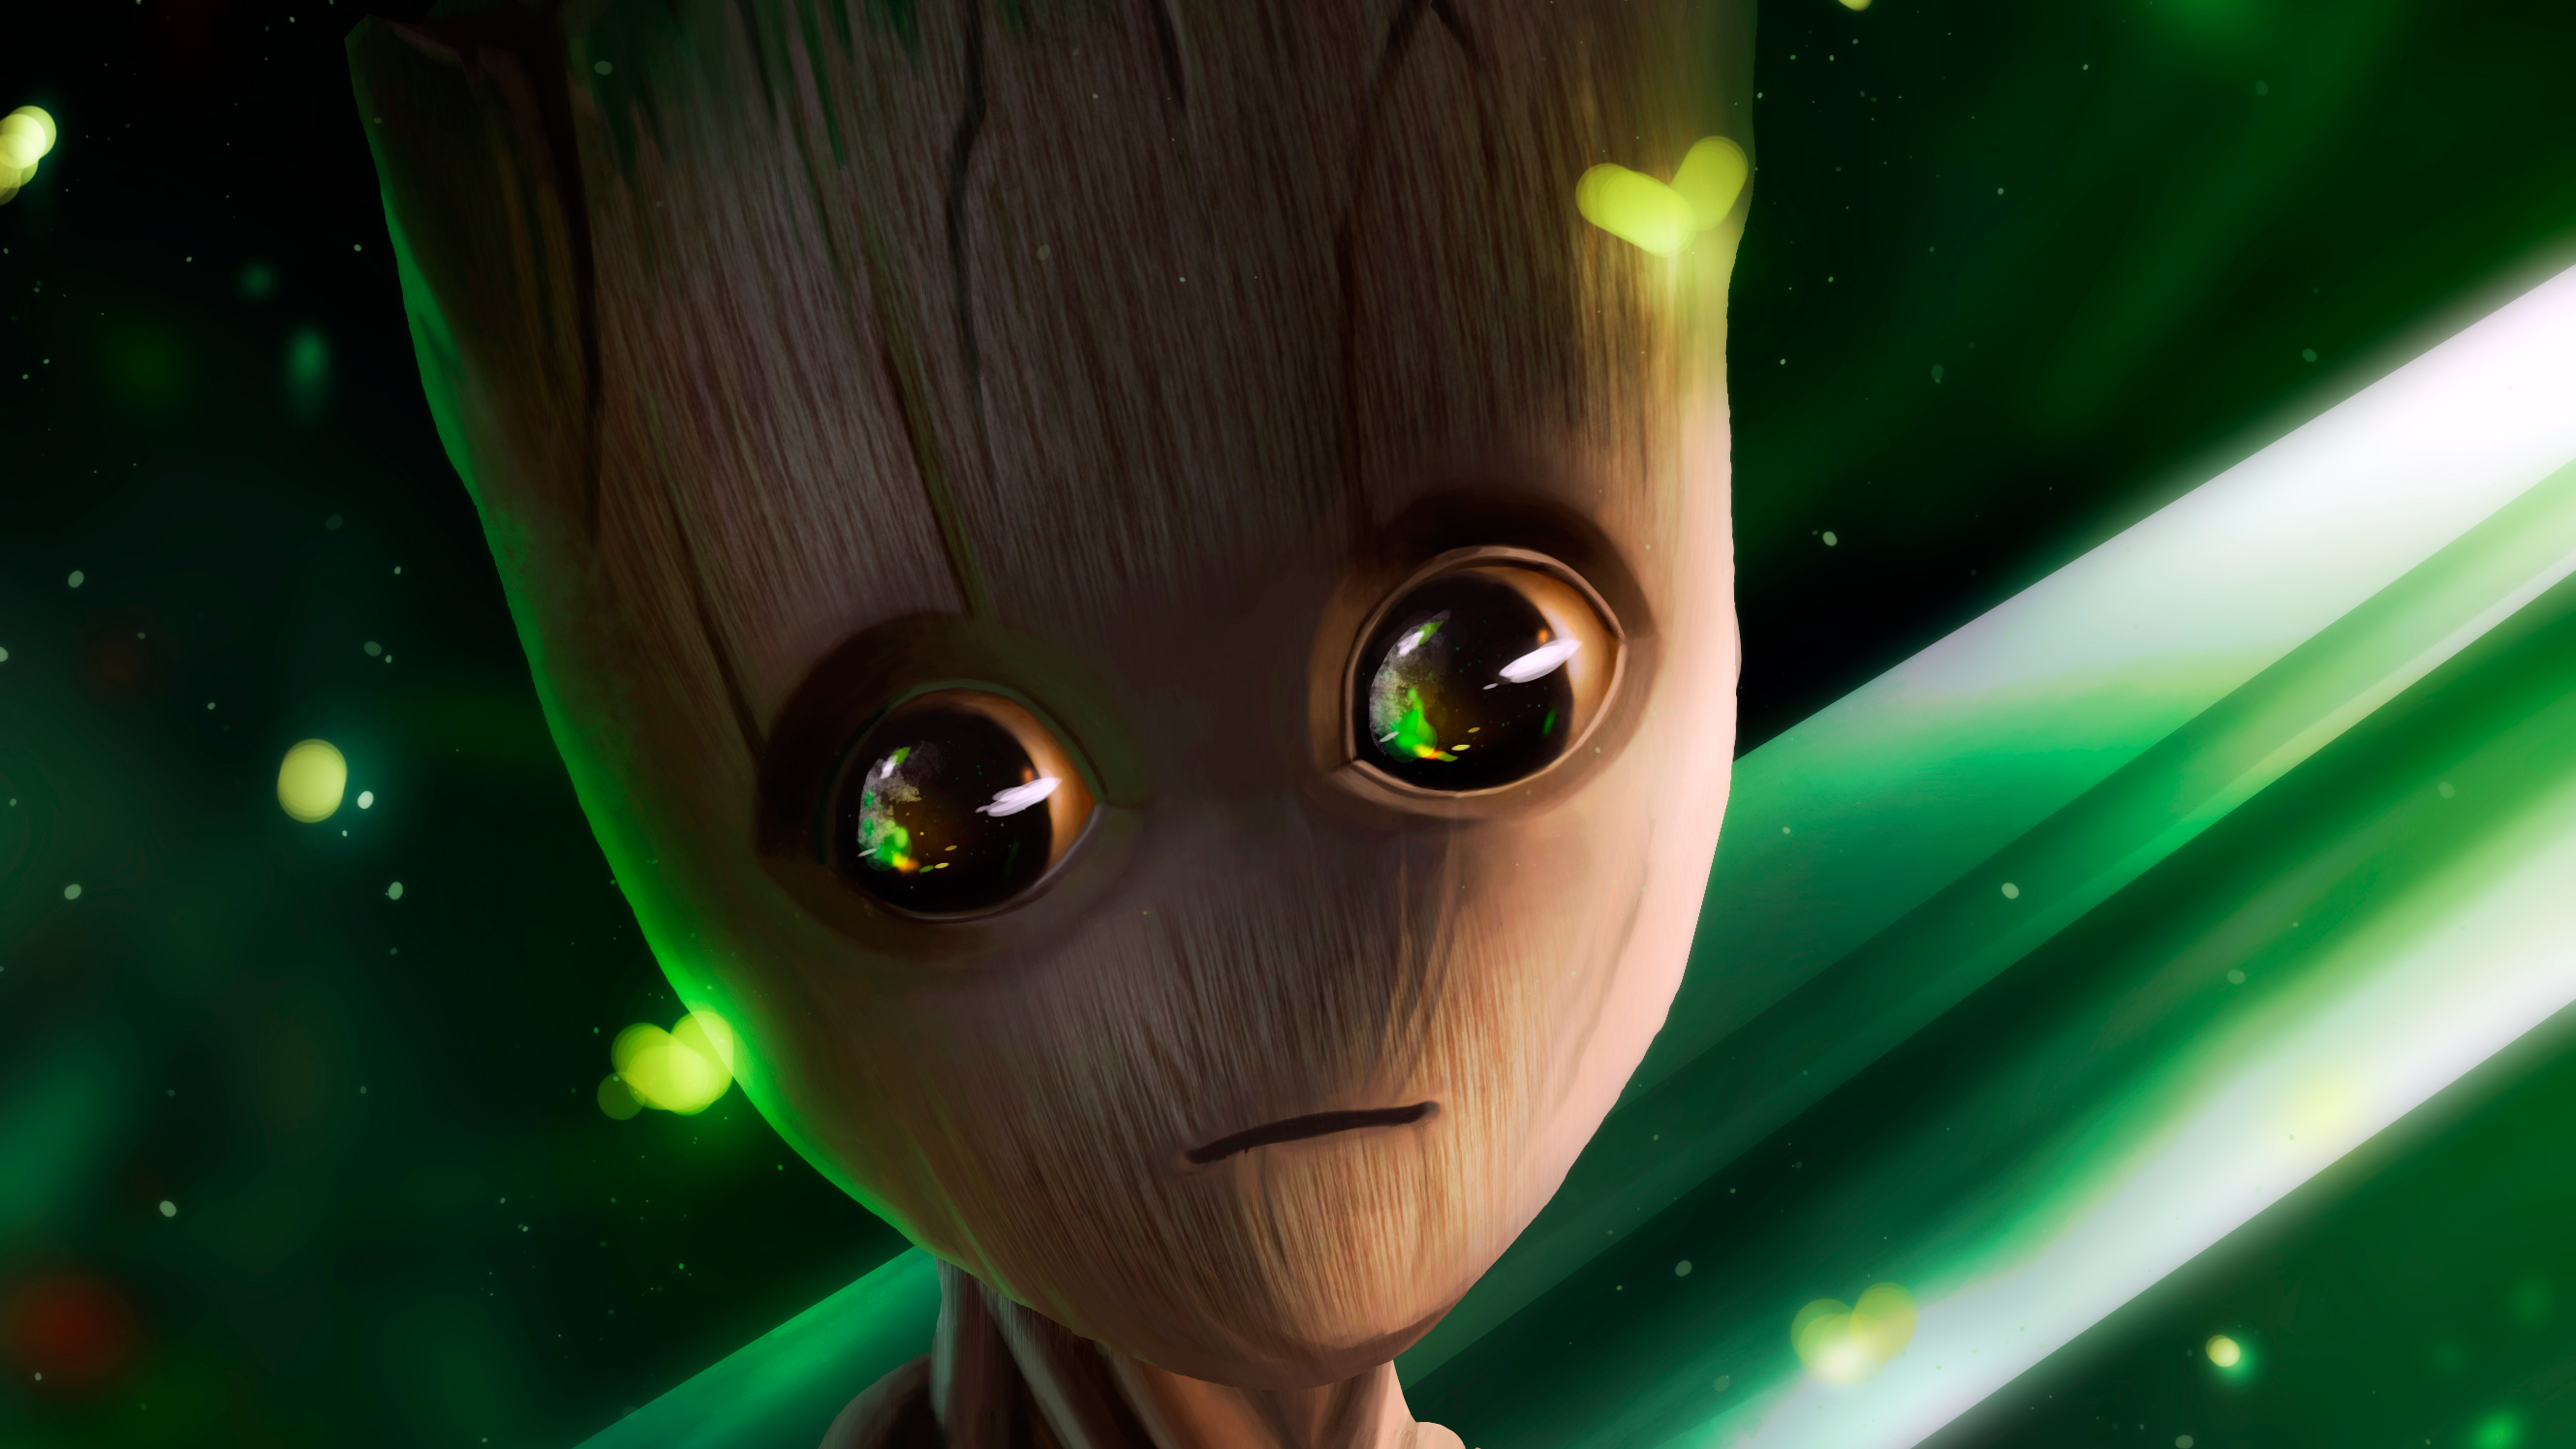 2932x2932 Fortnite Hd Ipad Pro Retina Display Hd 4k: 2932x2932 Baby Groot Art HD Ipad Pro Retina Display HD 4k